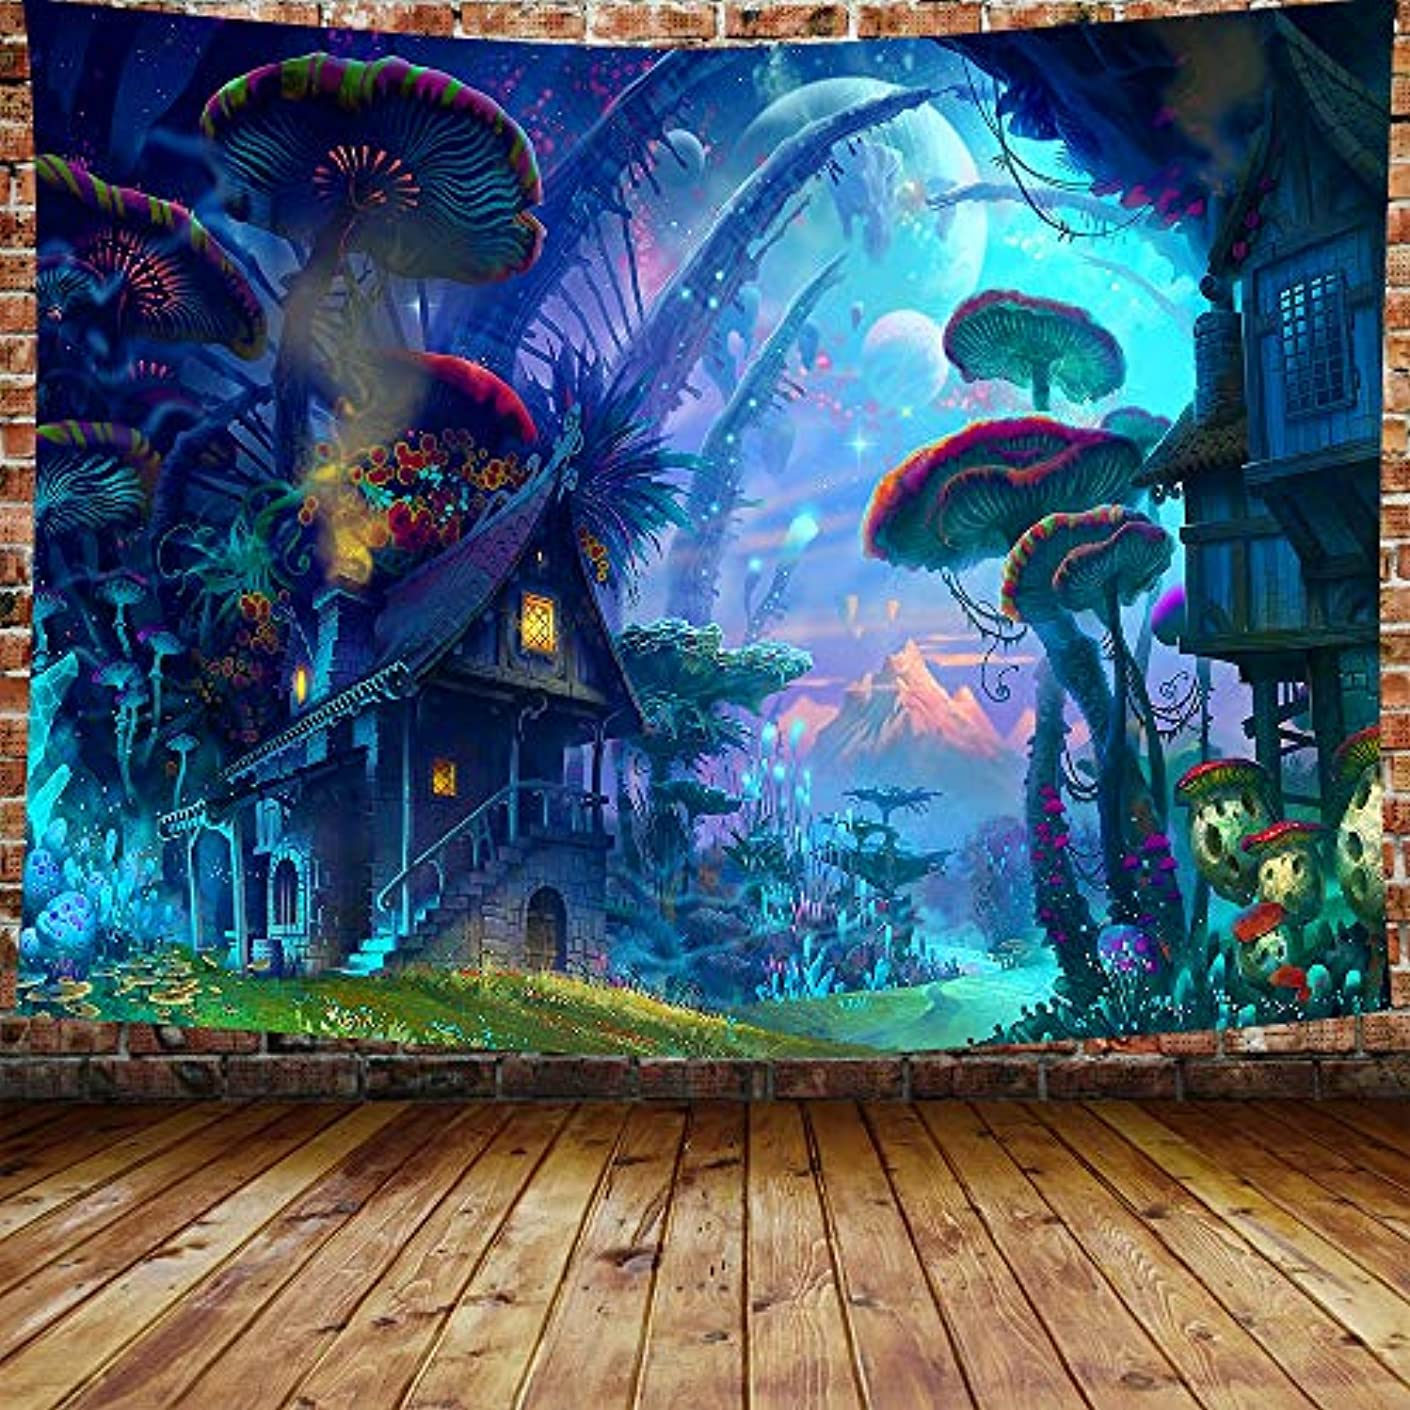 DBLLF Poster Psychedelic Mushroom Tapestry Trippy Colorful Surreal Abstract Astral Digital Art Office Electric Forest Wall Decor Tapestries Tapestry Wall Hanging Tapestries 80×60 Inches DBZY0290